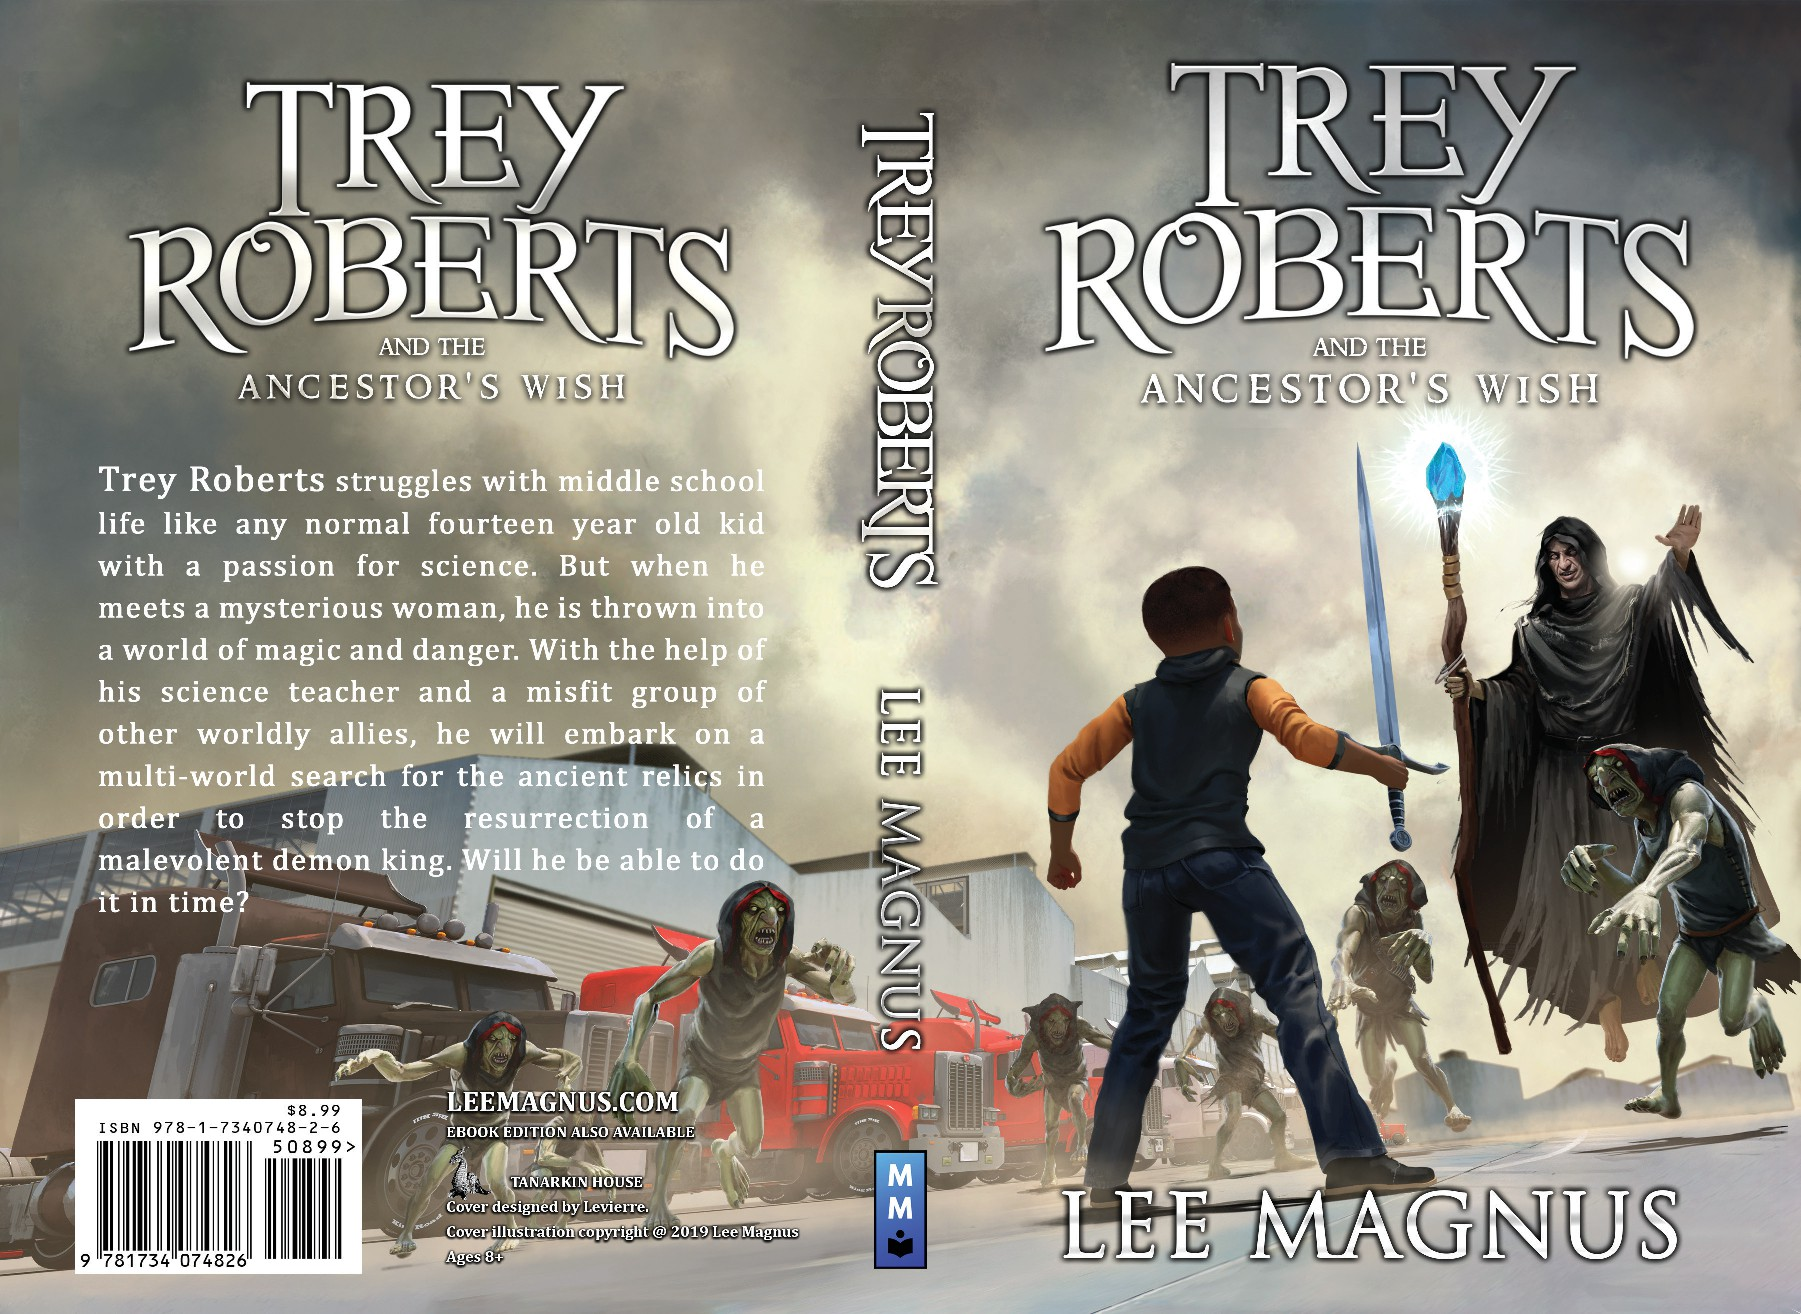 Fantasy Fiction book cover - dragons, wizards, monsters, swords and fire